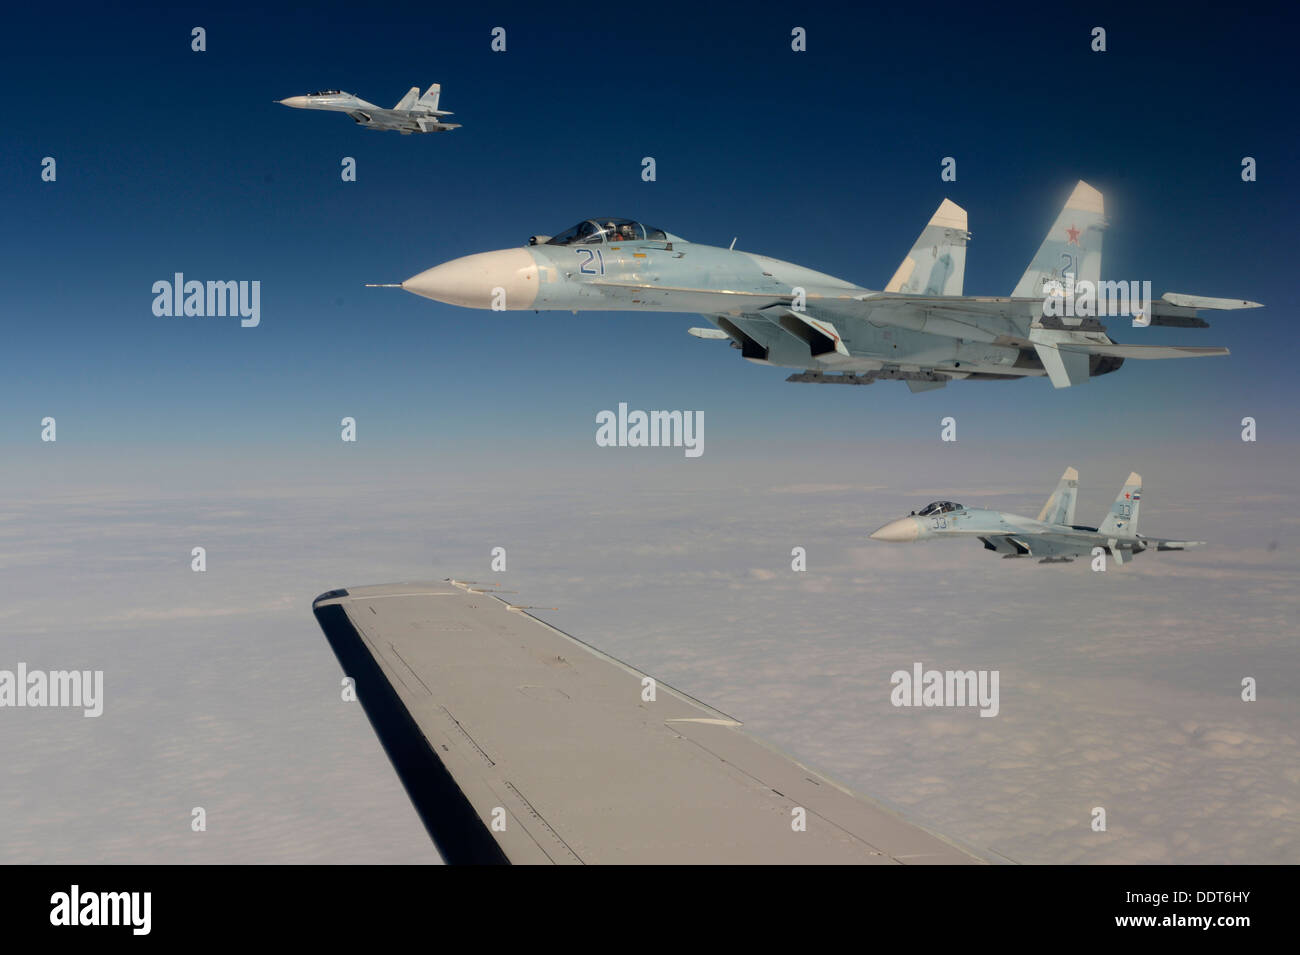 Russian Federation Air Force Su-27 Sukhois intercepts a simulated hijacked aircraft entering Russian airspace Aug. Stock Photo